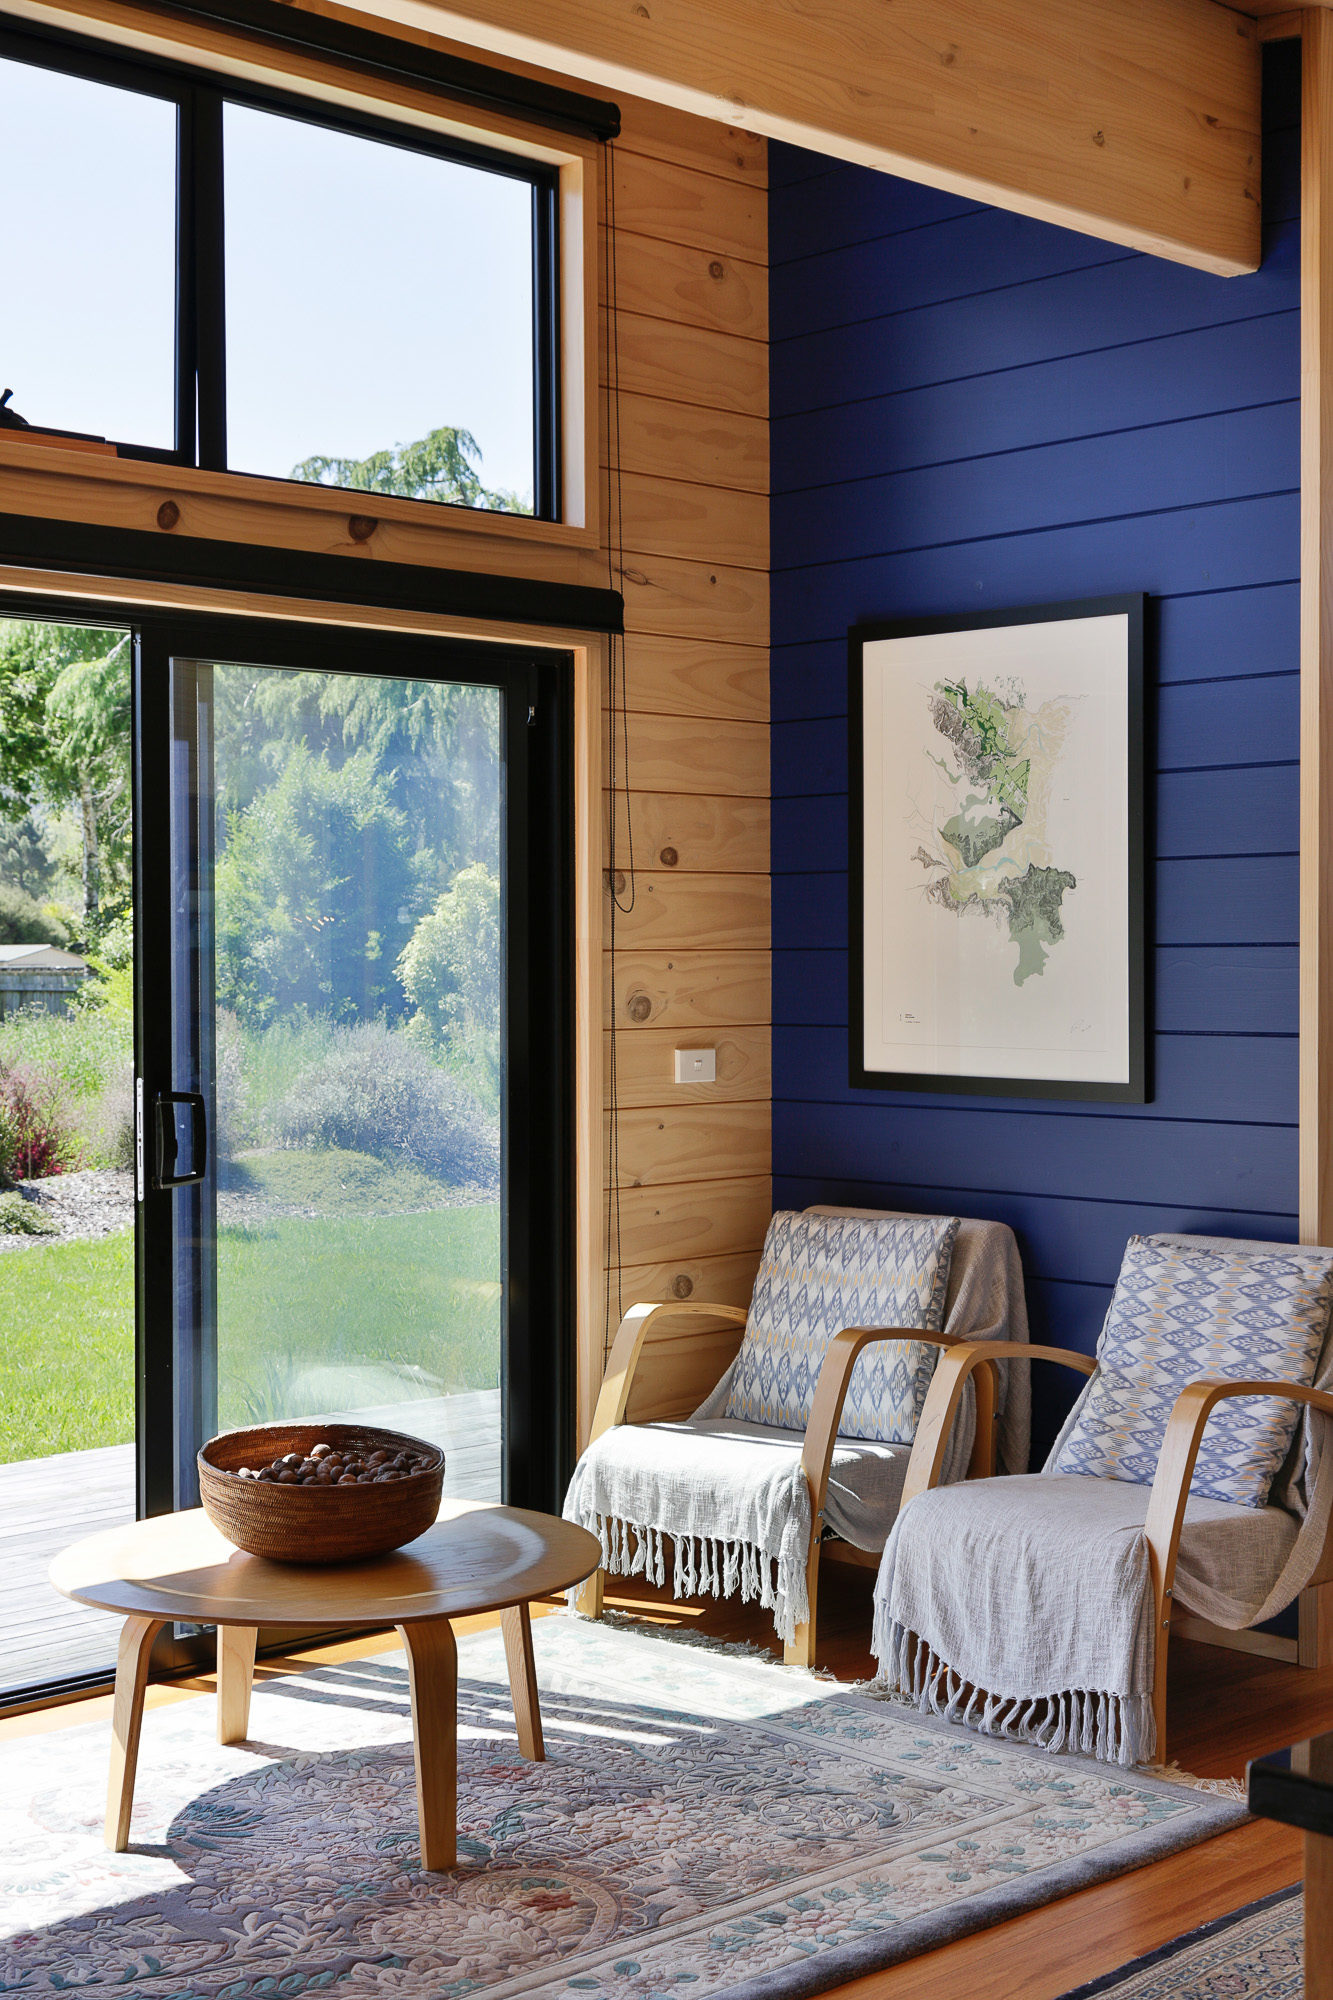 Lockwood holiday home with Resene Aviator blue walls